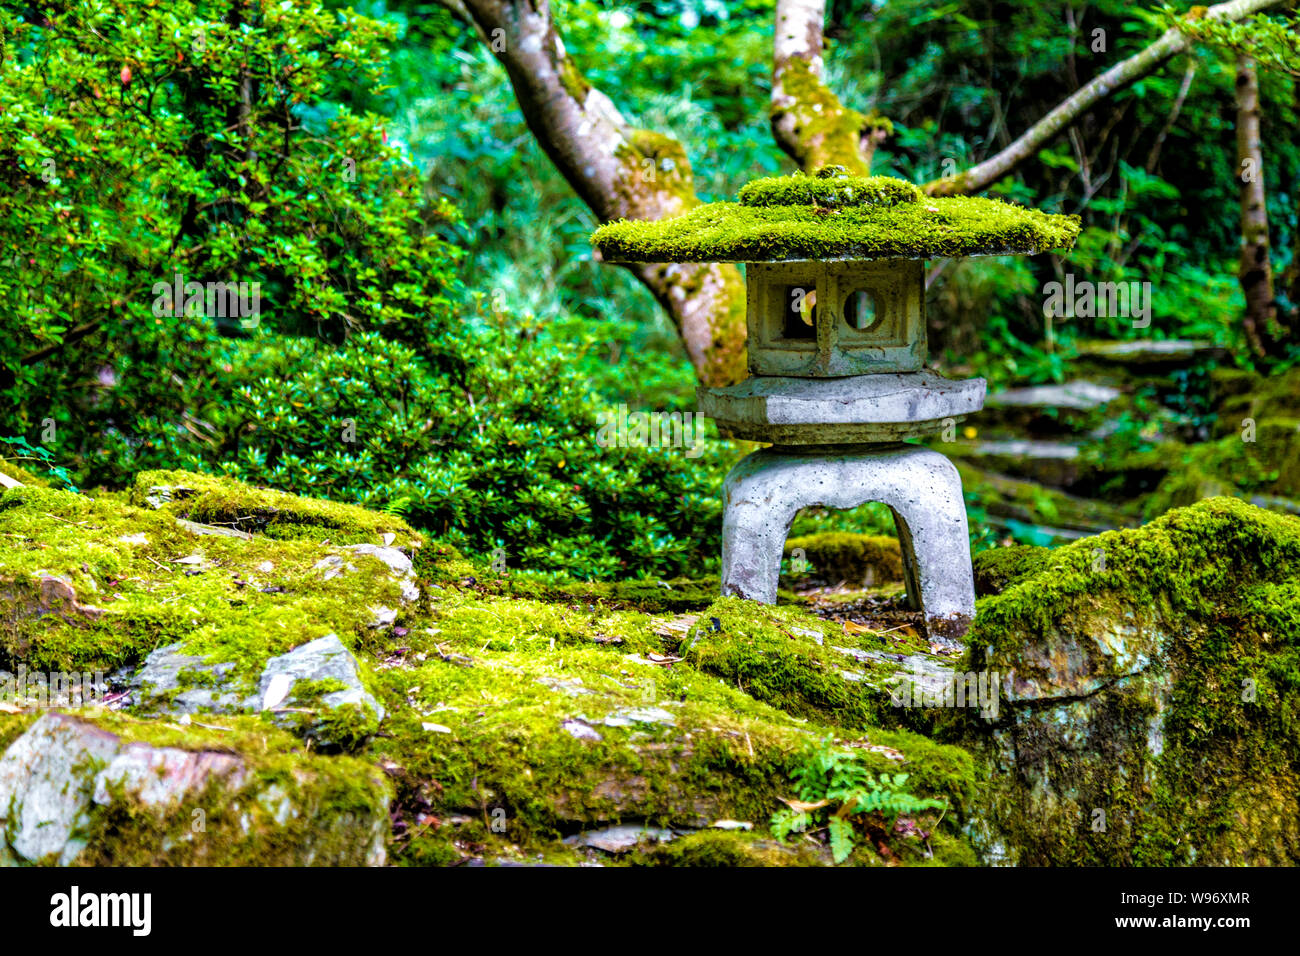 Stone Lantern Covered With Moss At The Japanese Garden In St